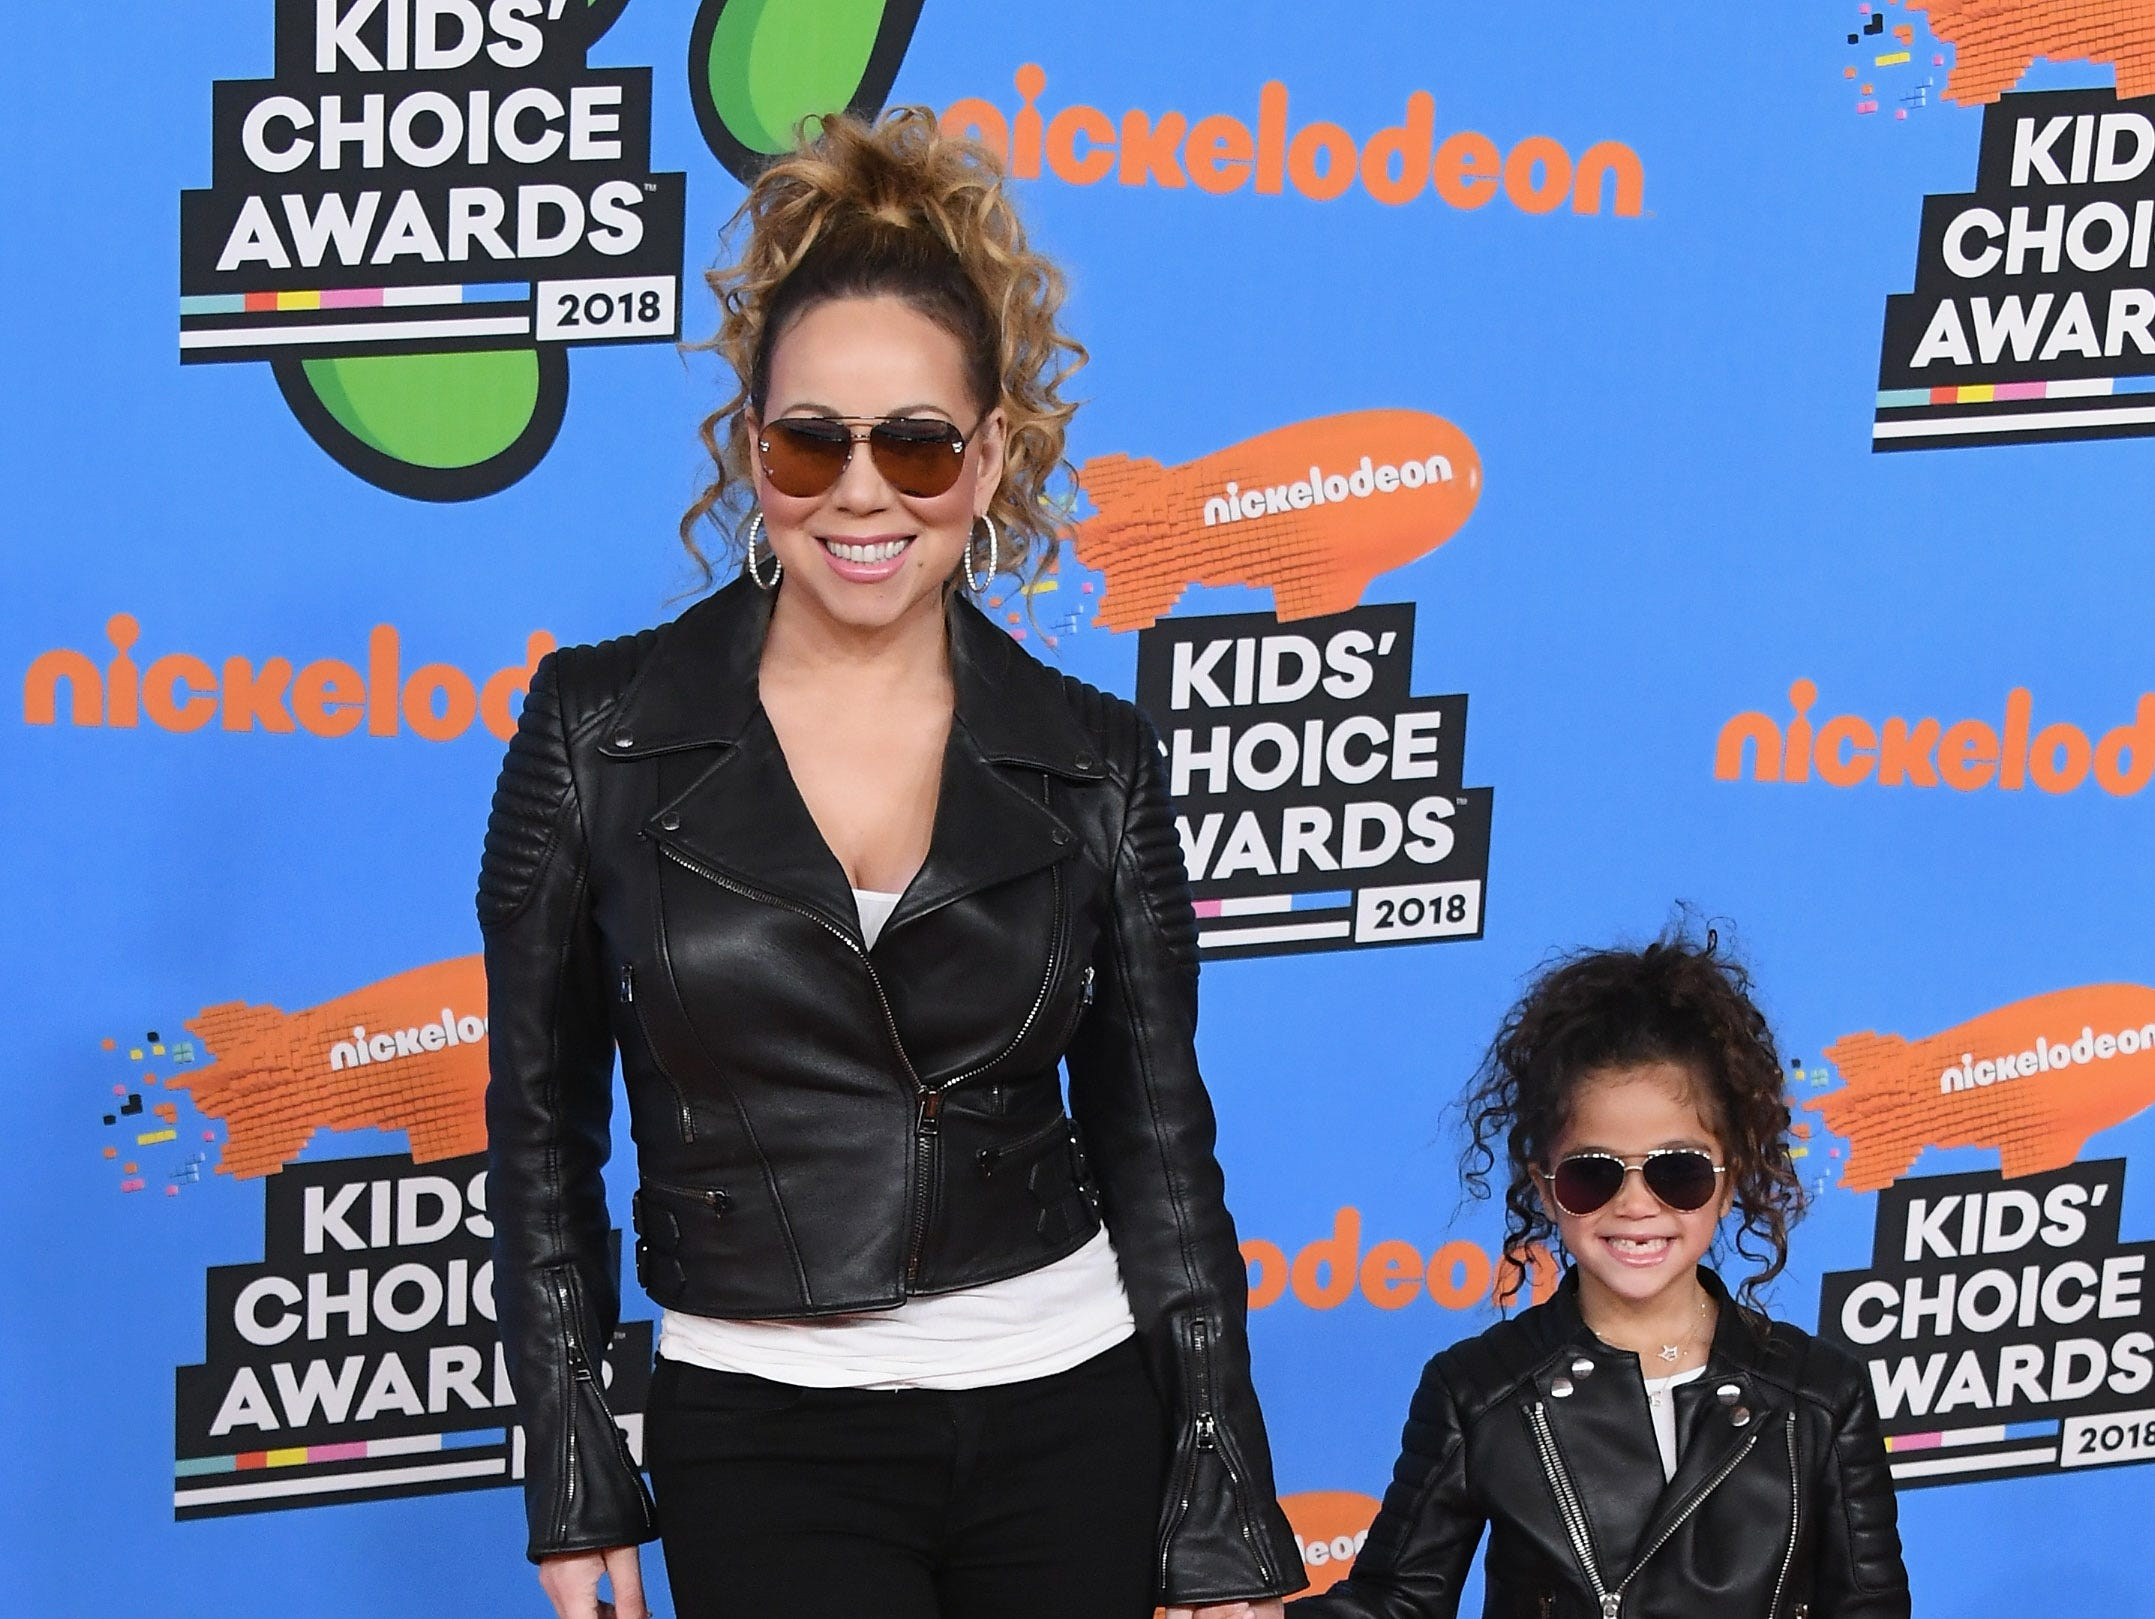 Mariah Carey and her mini me, her daughter Monroe Cannon, at the Kids' Choice Awards.